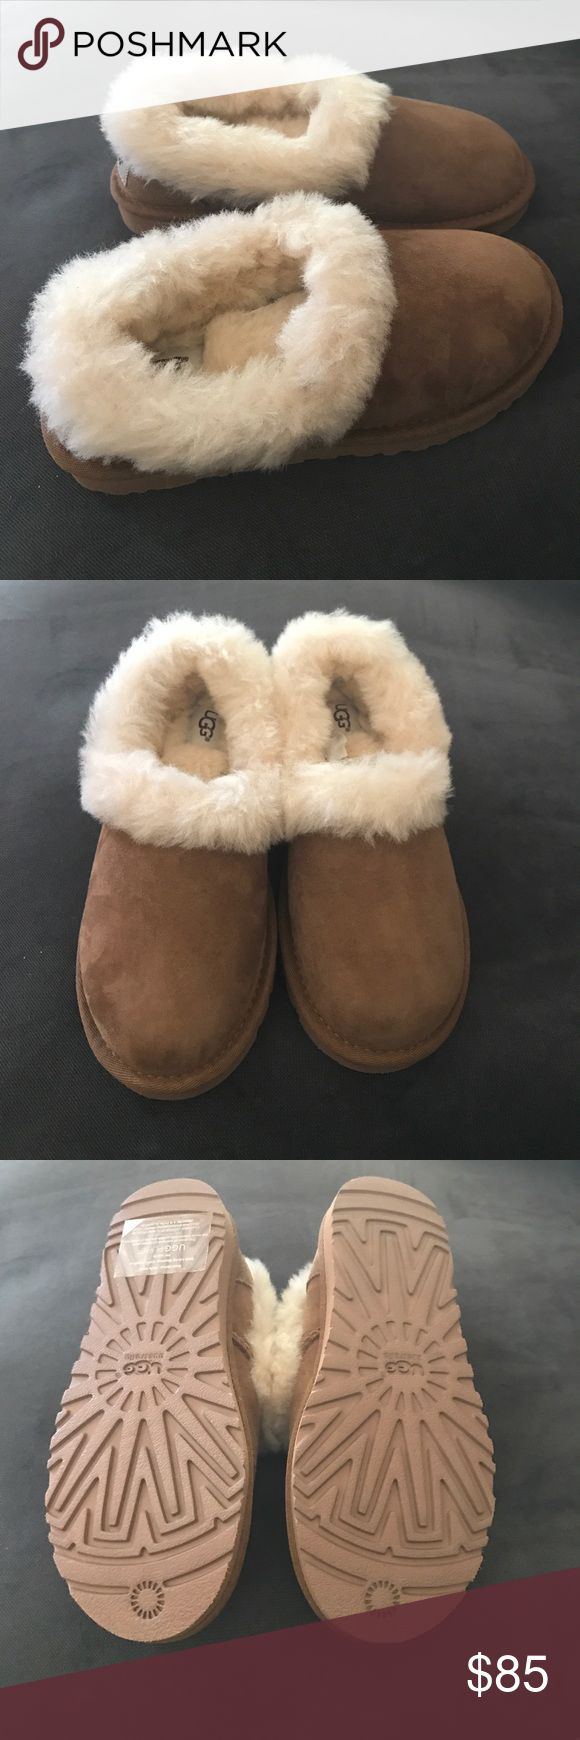 "UGGNita Shearling Slipper UGG suede slipper. Bleached, dyed lamb shearling (Australia, UK, or USA) fur lining and trim. UGGpure™ 100% wool sock lining. 1"" flat heel. Round toe. Logo patch at backstay. EVA molded rubber outsole. ""Nita"" is imported. Brand new in a box but no lead on the box UGG Shoes Slippers"